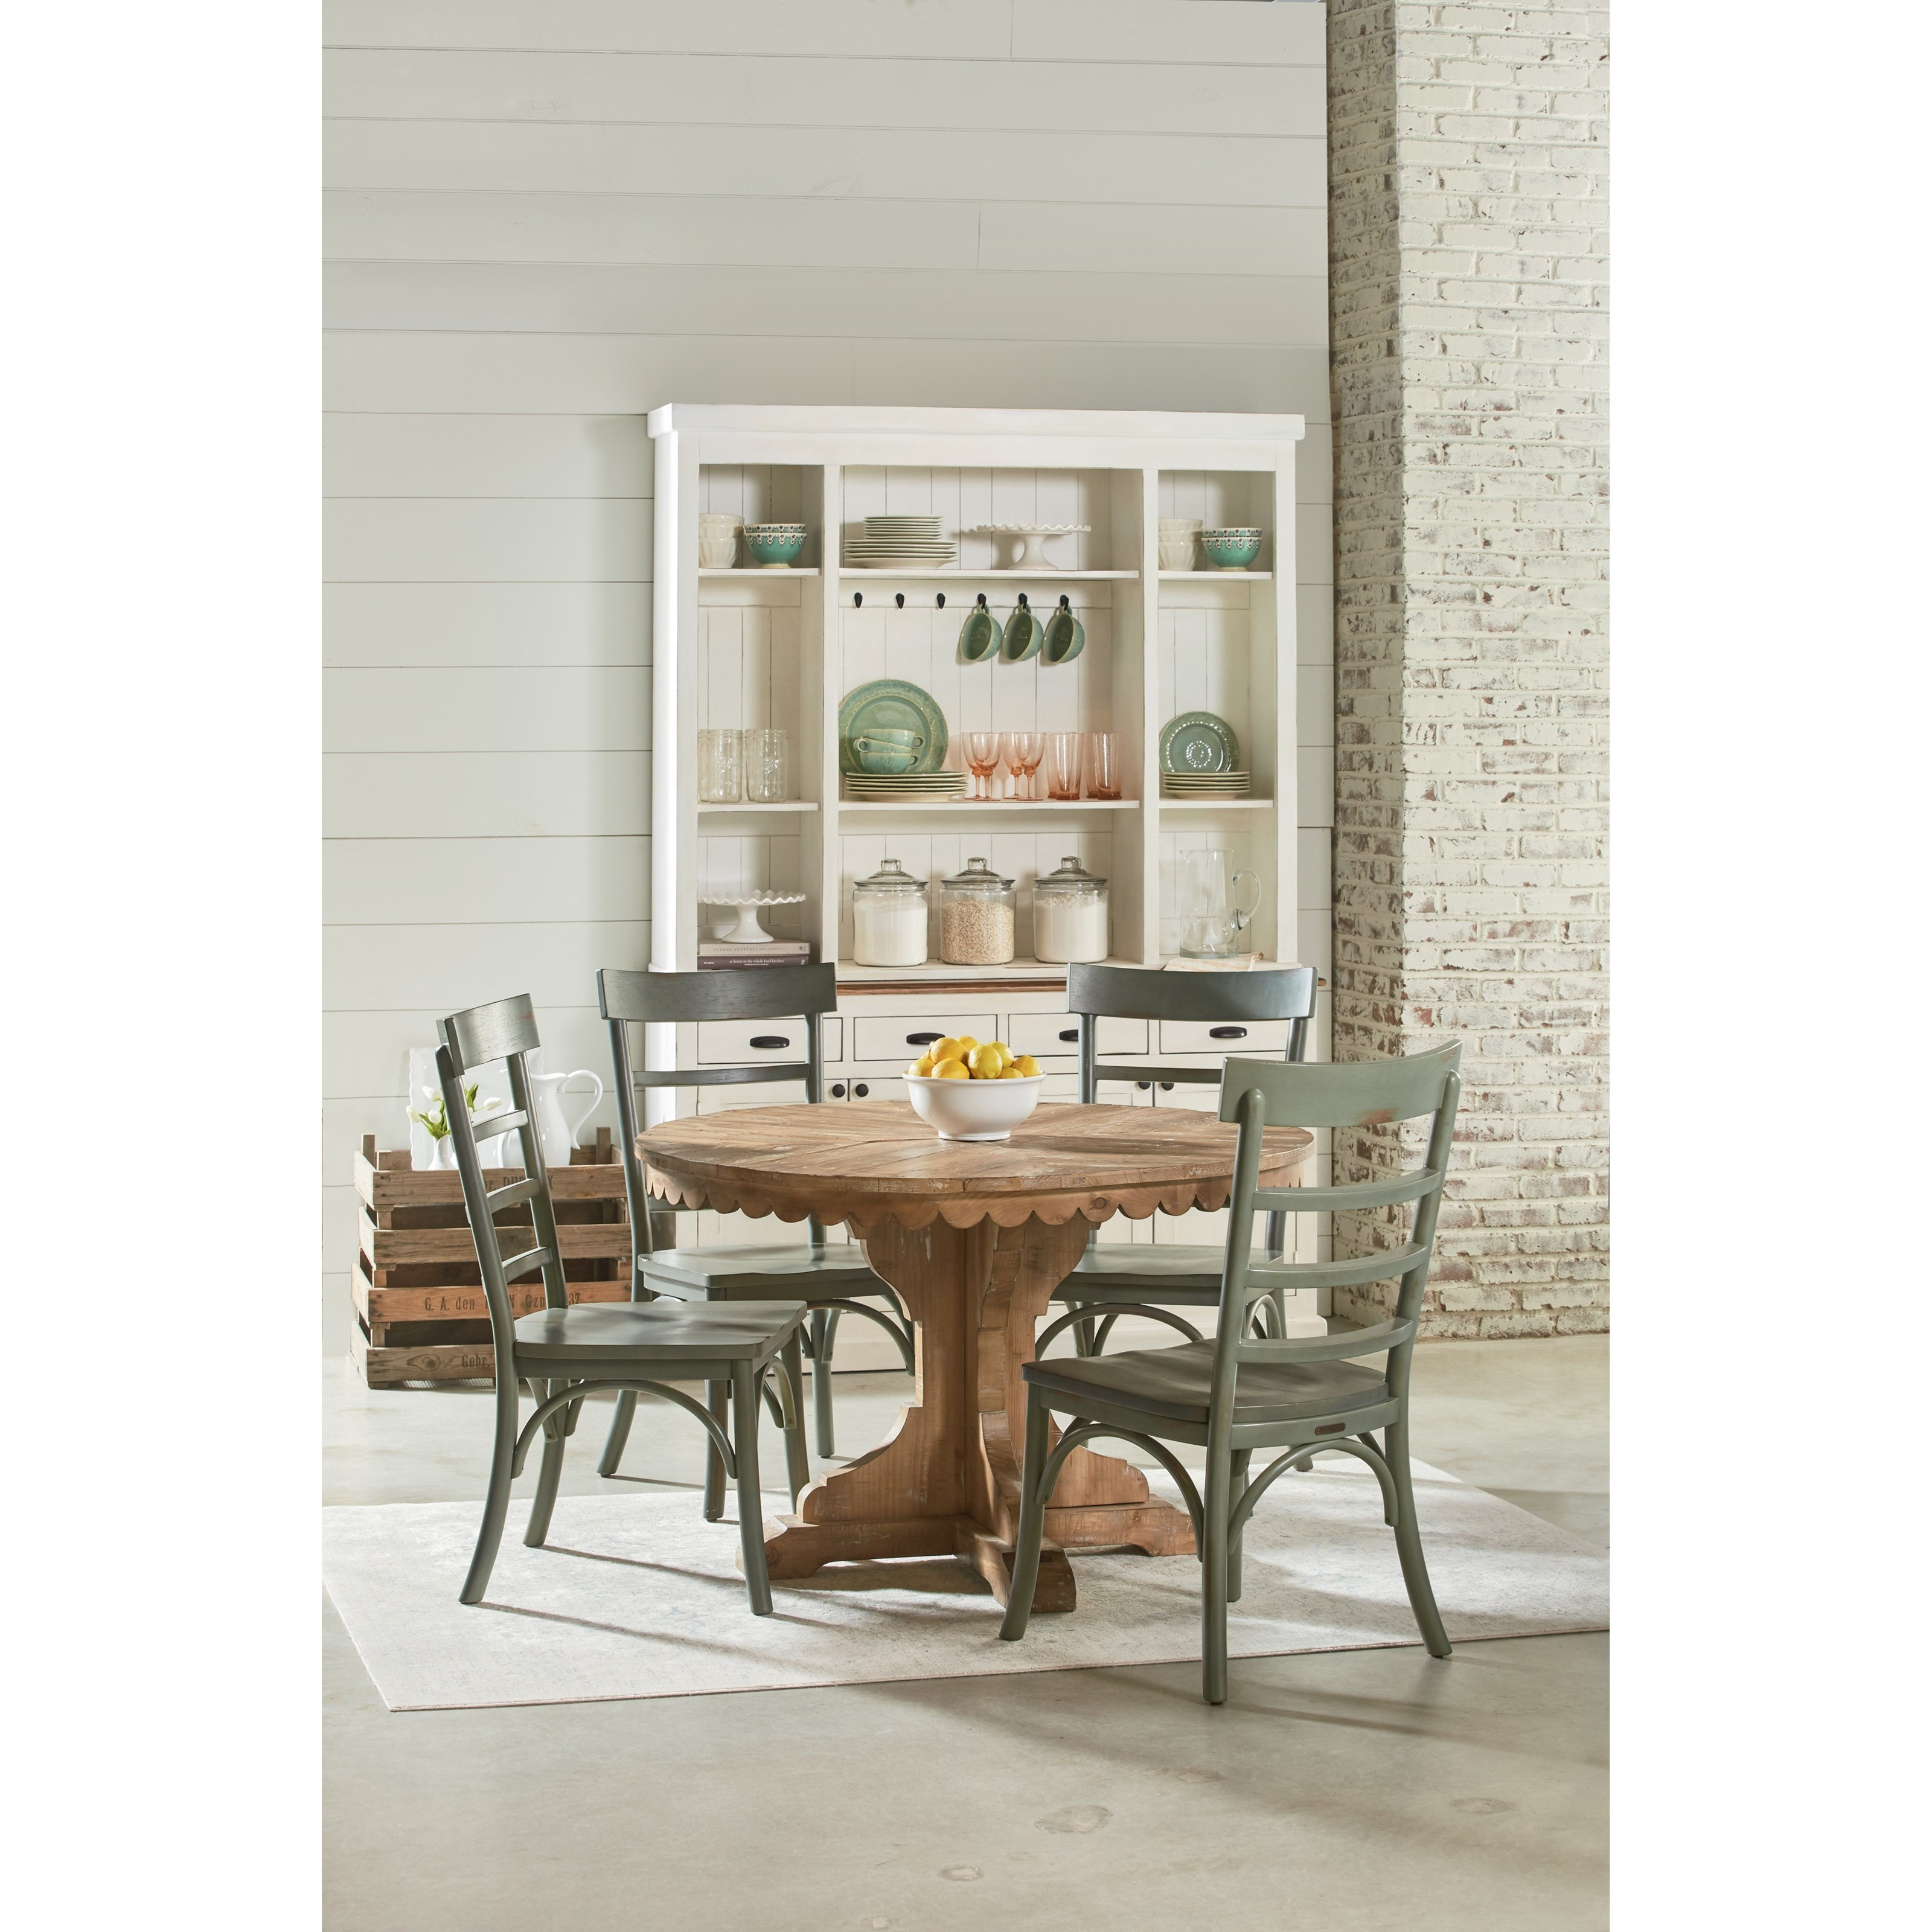 Magnolia Home By Joanna Gaines Farmhouse Kitchen Dining Room Group Jacksonville Furniture Mart Casual Dining Room Groups